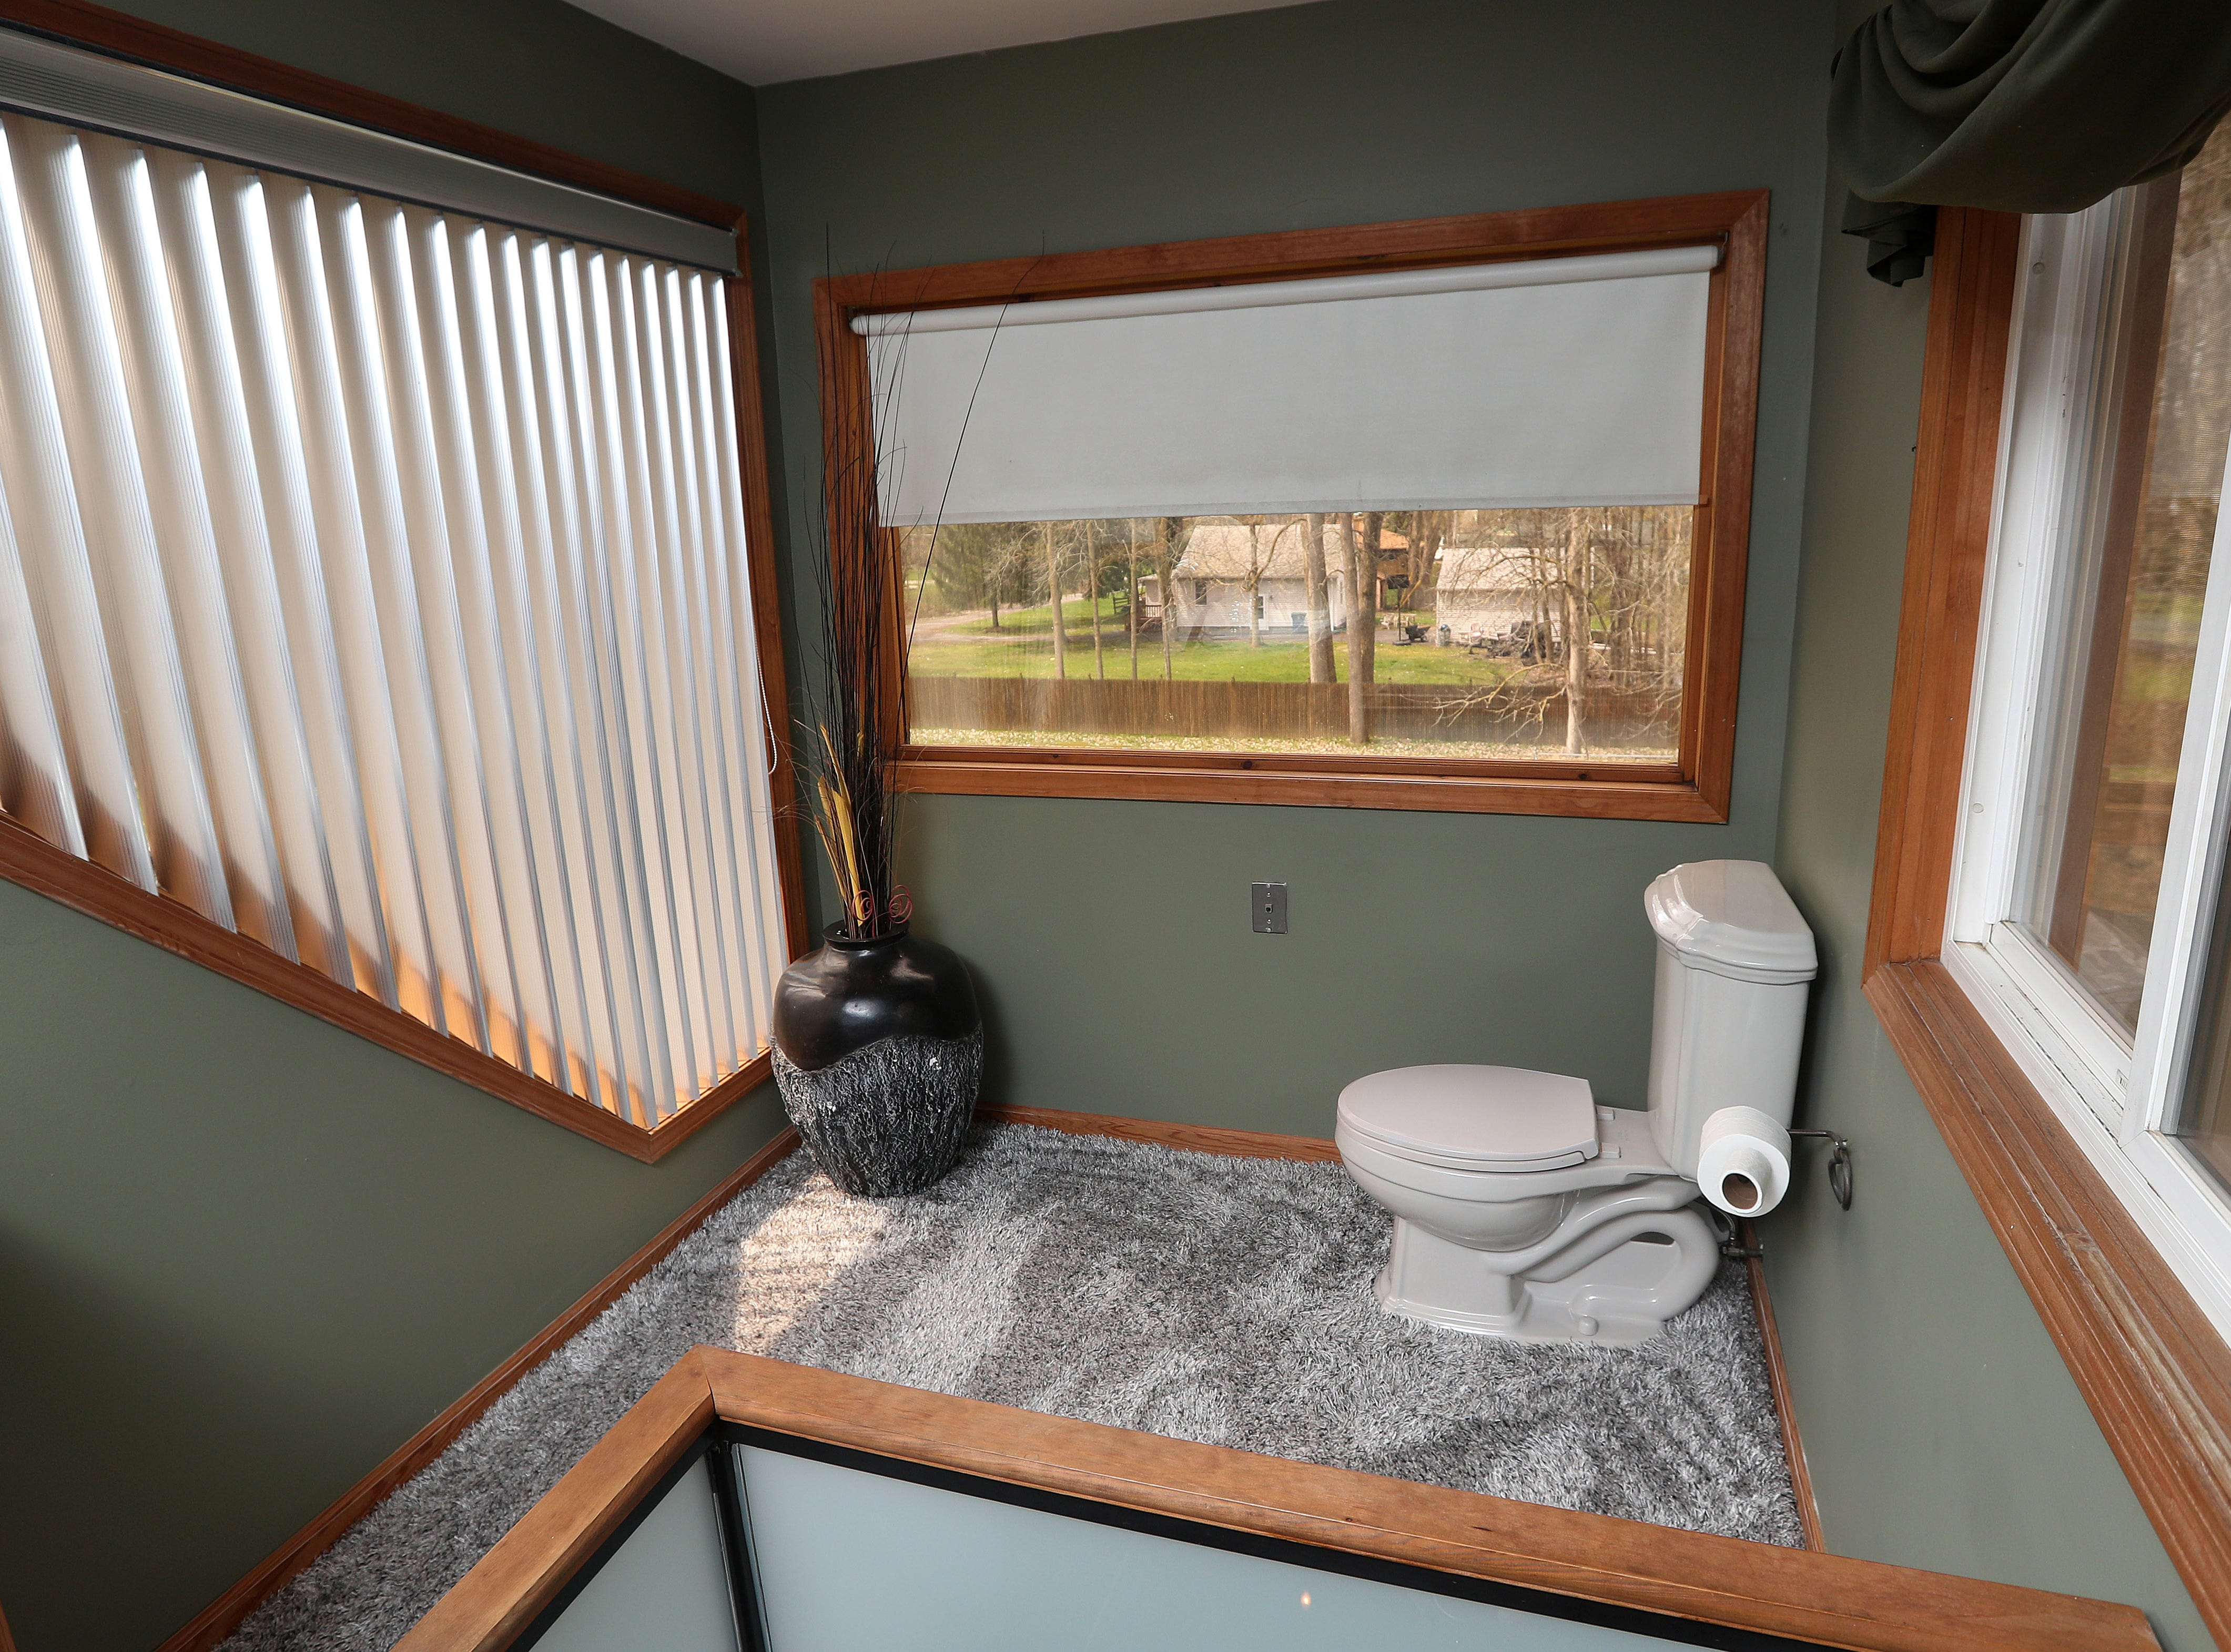 The bathroom overlooking part of the property.